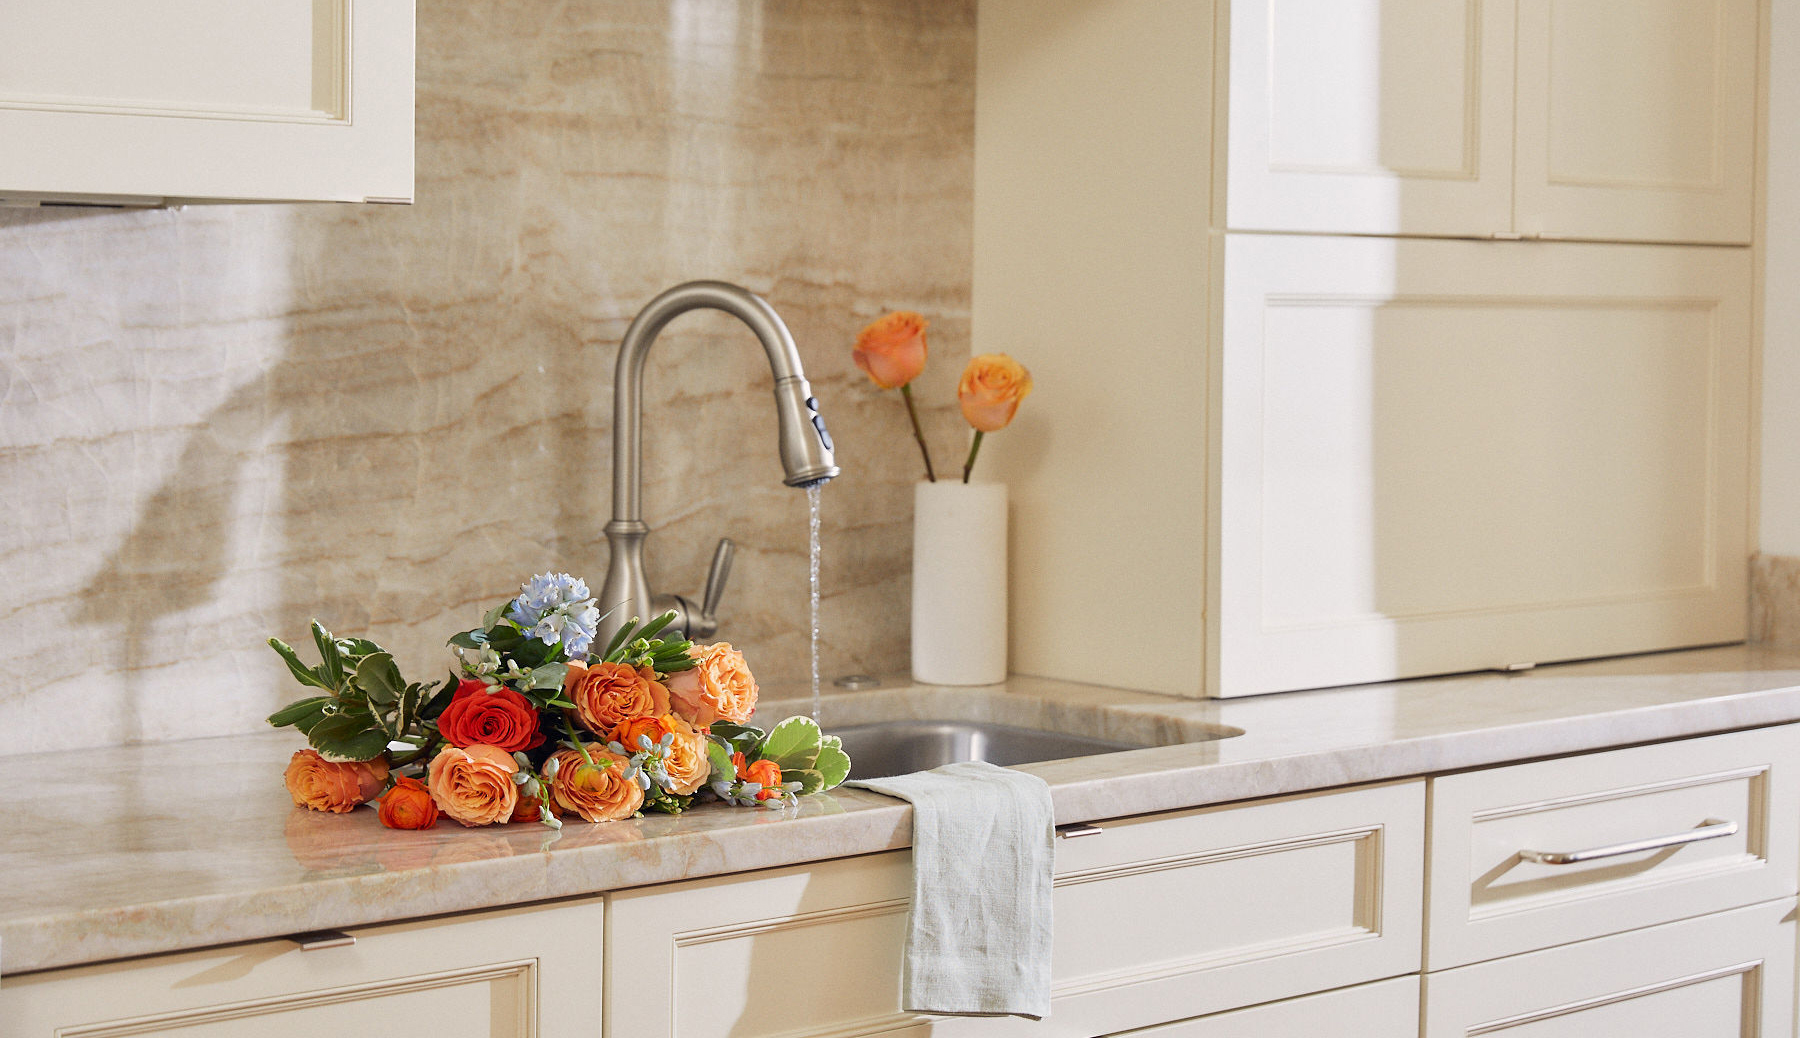 Bouquet of flowers on countertop next to running sink.